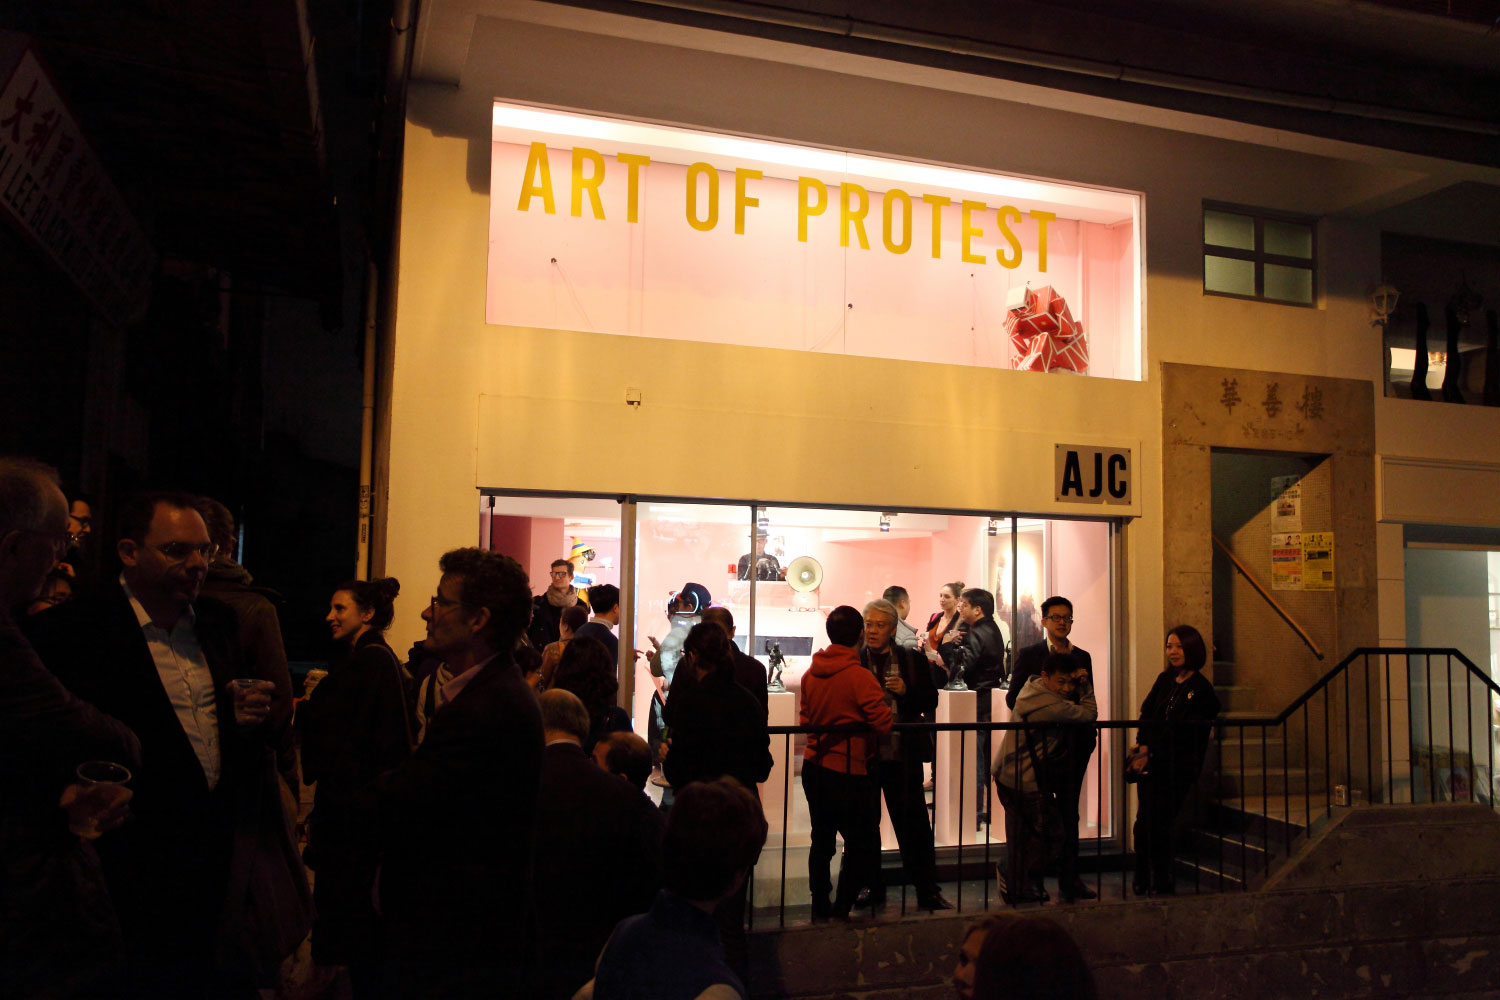 art-of-protest-resisting-against-absurity-by-kacey-wong-12.jpg